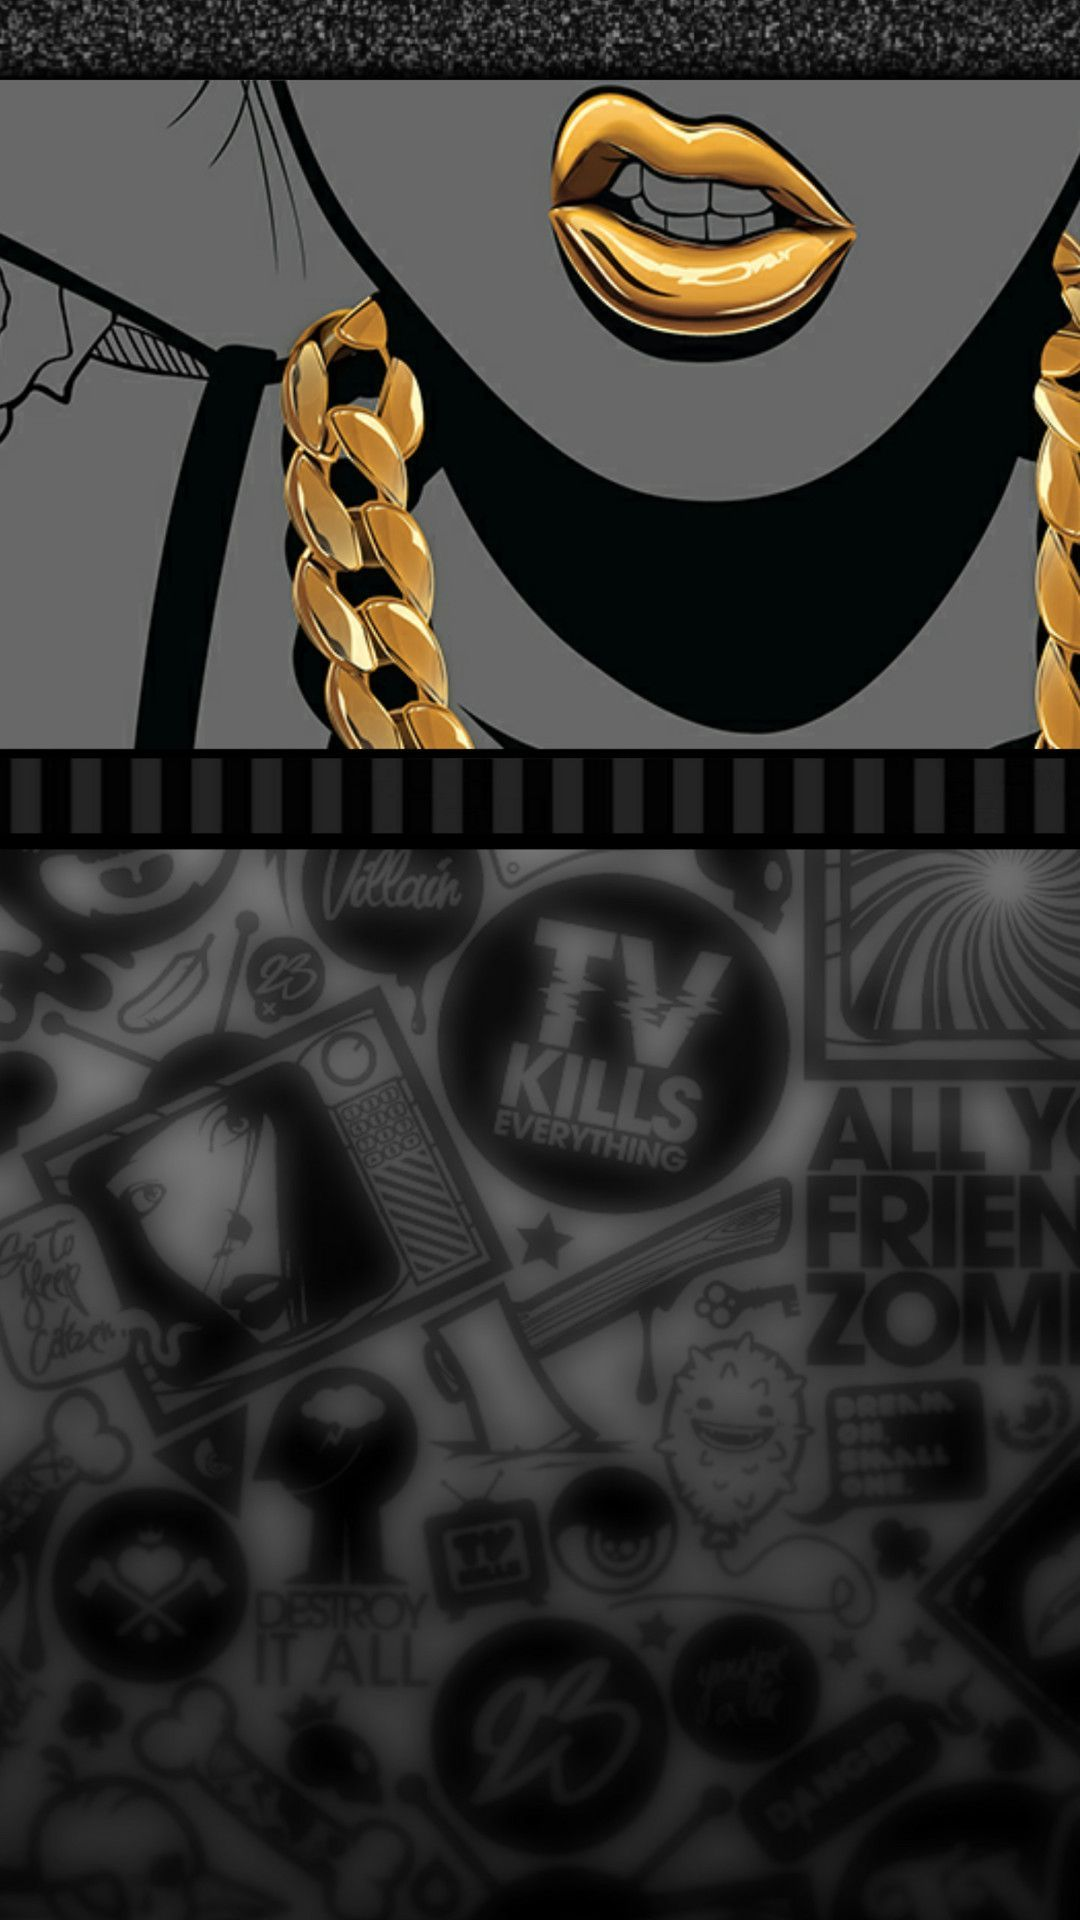 Pin On Iphone Wallpaper Get inspired for dope hd wallpaper for